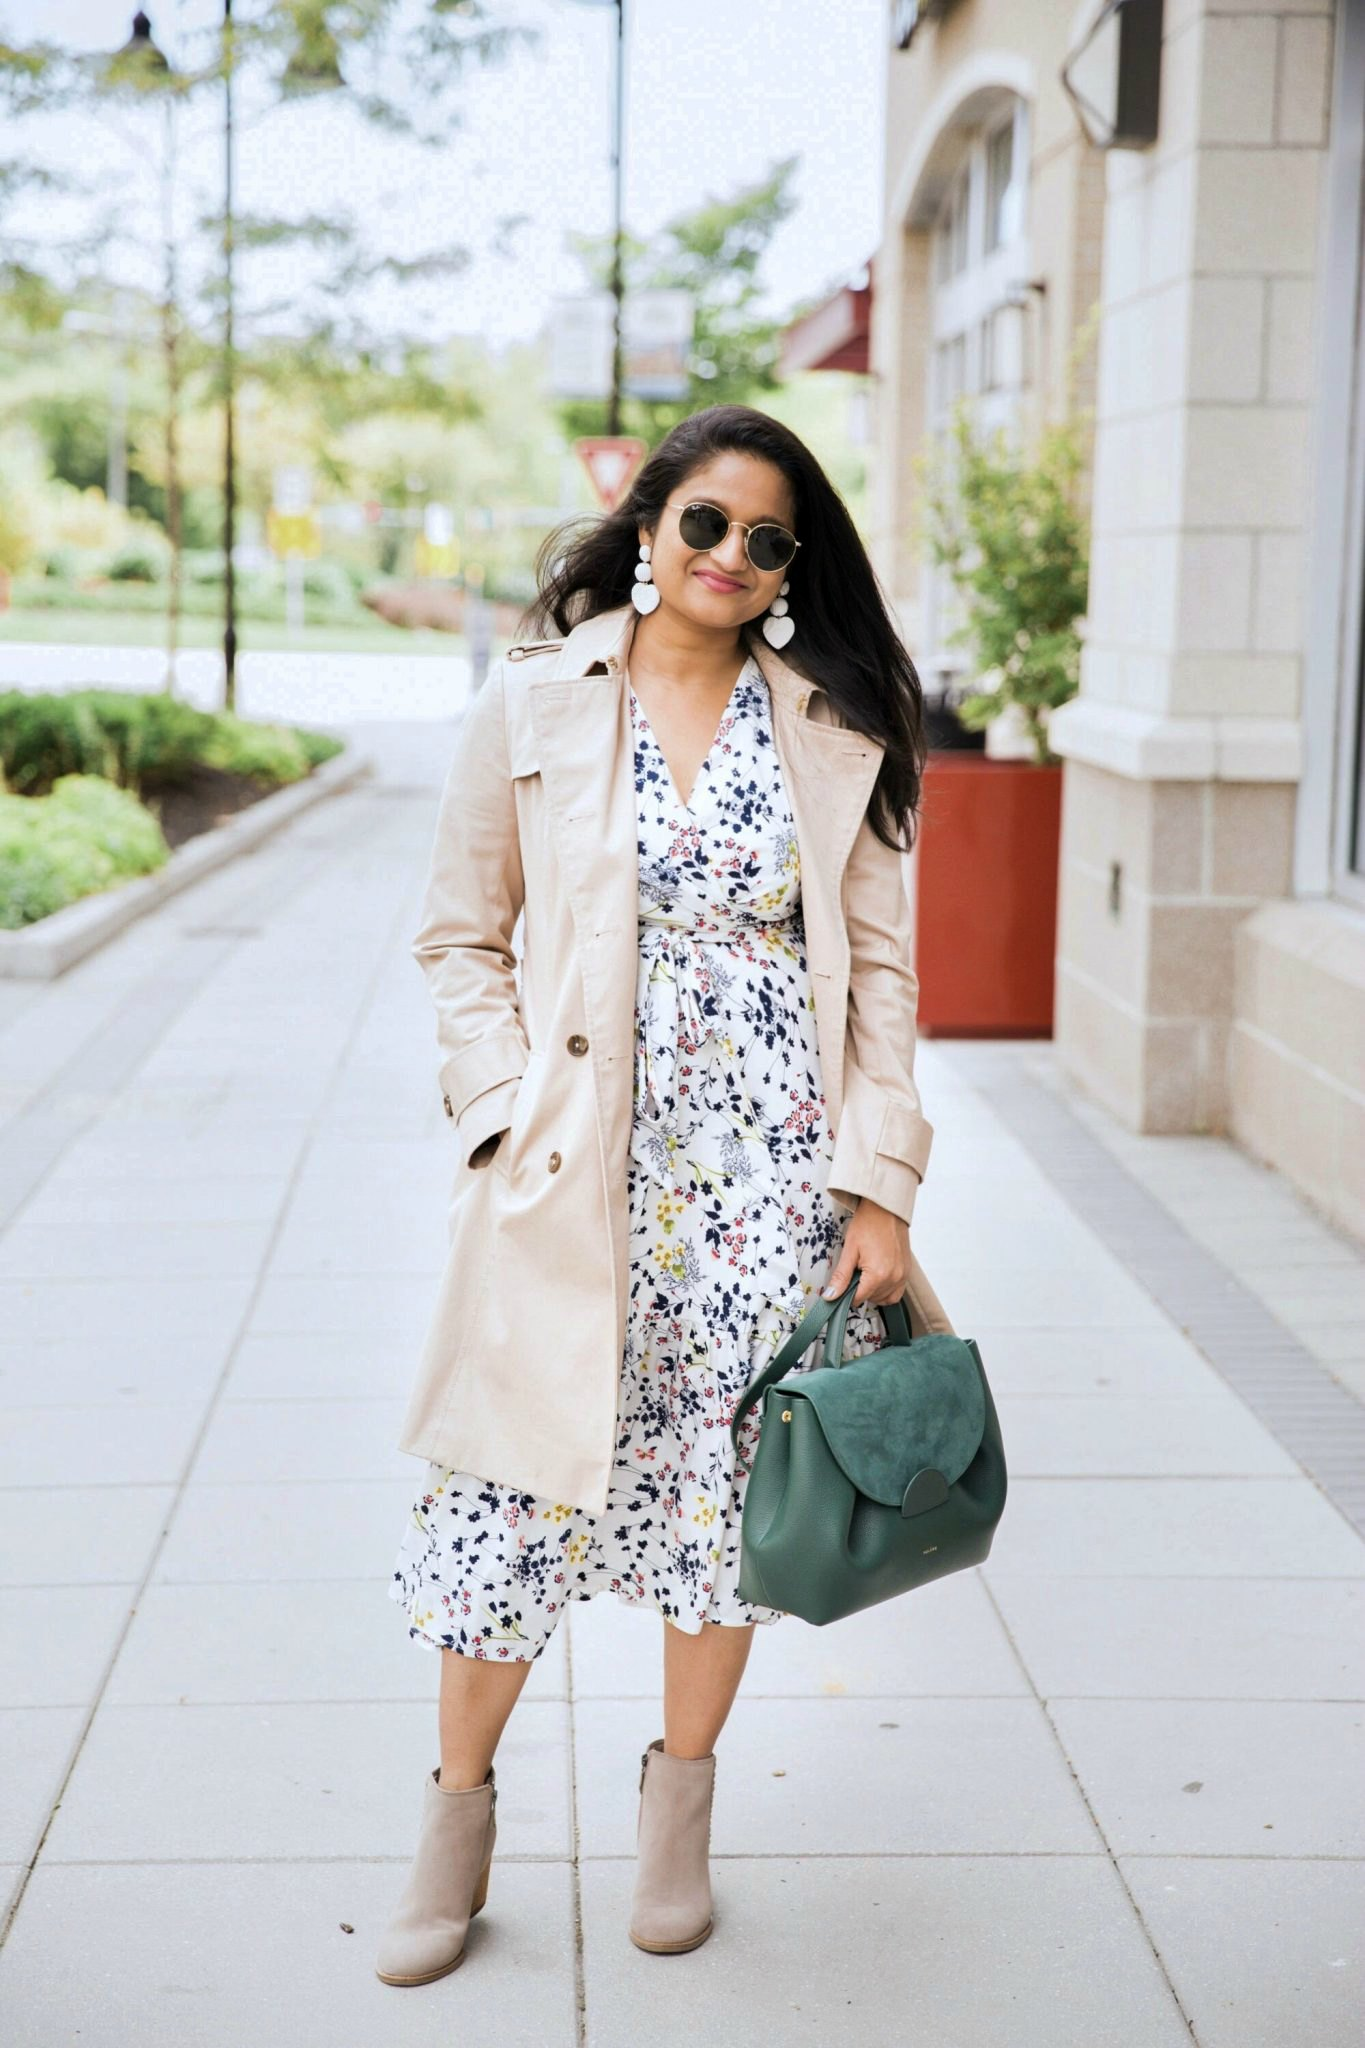 Early fall fashion look featured by top US modest fashion blog, Dreaming Loud: image of a woman wearing a Modest Passion Collection floral midi dress, Polene handbag, Brooks Brothers trench coat, Blonde suede boots, and Baublebar heart drop earrings | Lightweight Jackets by popular Maryland modest fashion blog, Dreaming Loud: image of a woman wearing white and blue floral print dress, tan jacket, tan ankle boots, white statement earrings, and holding green purse.